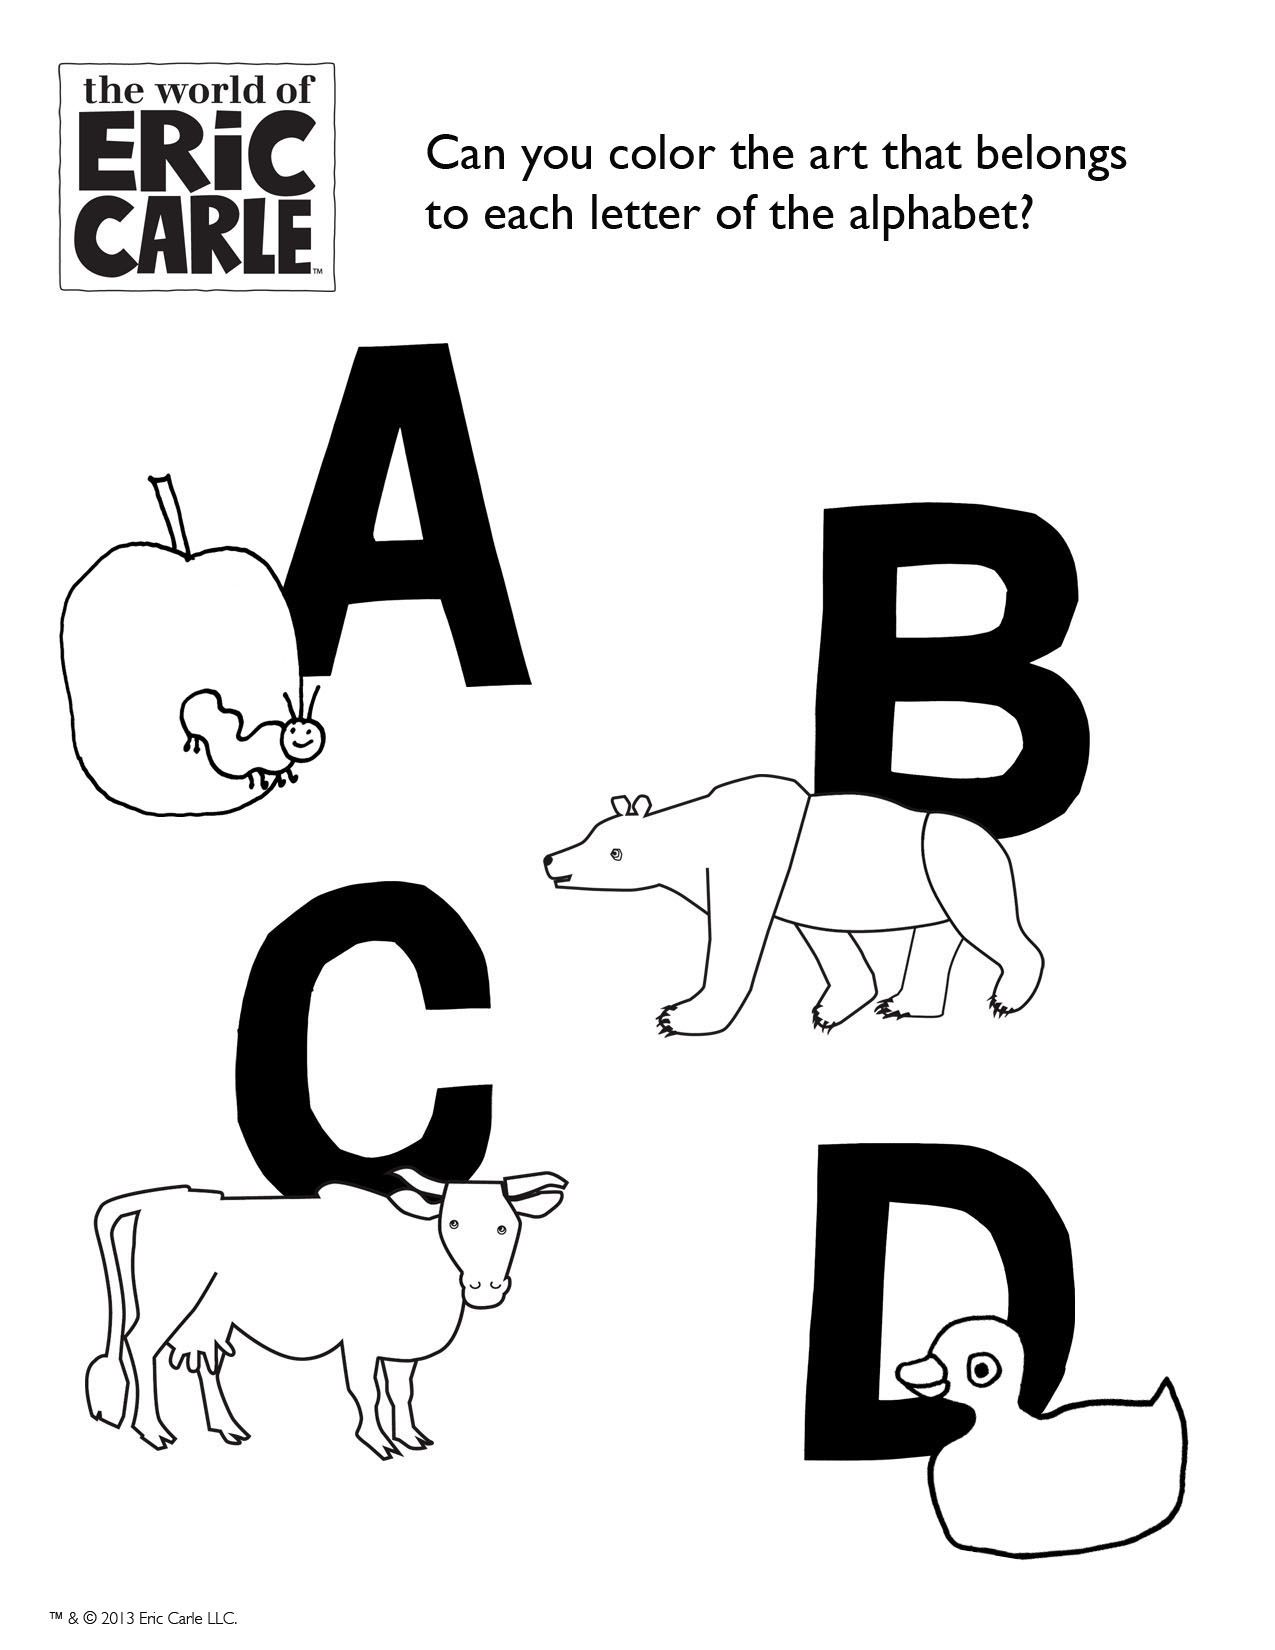 Color the Alphabet! Can you color the art that belongs to